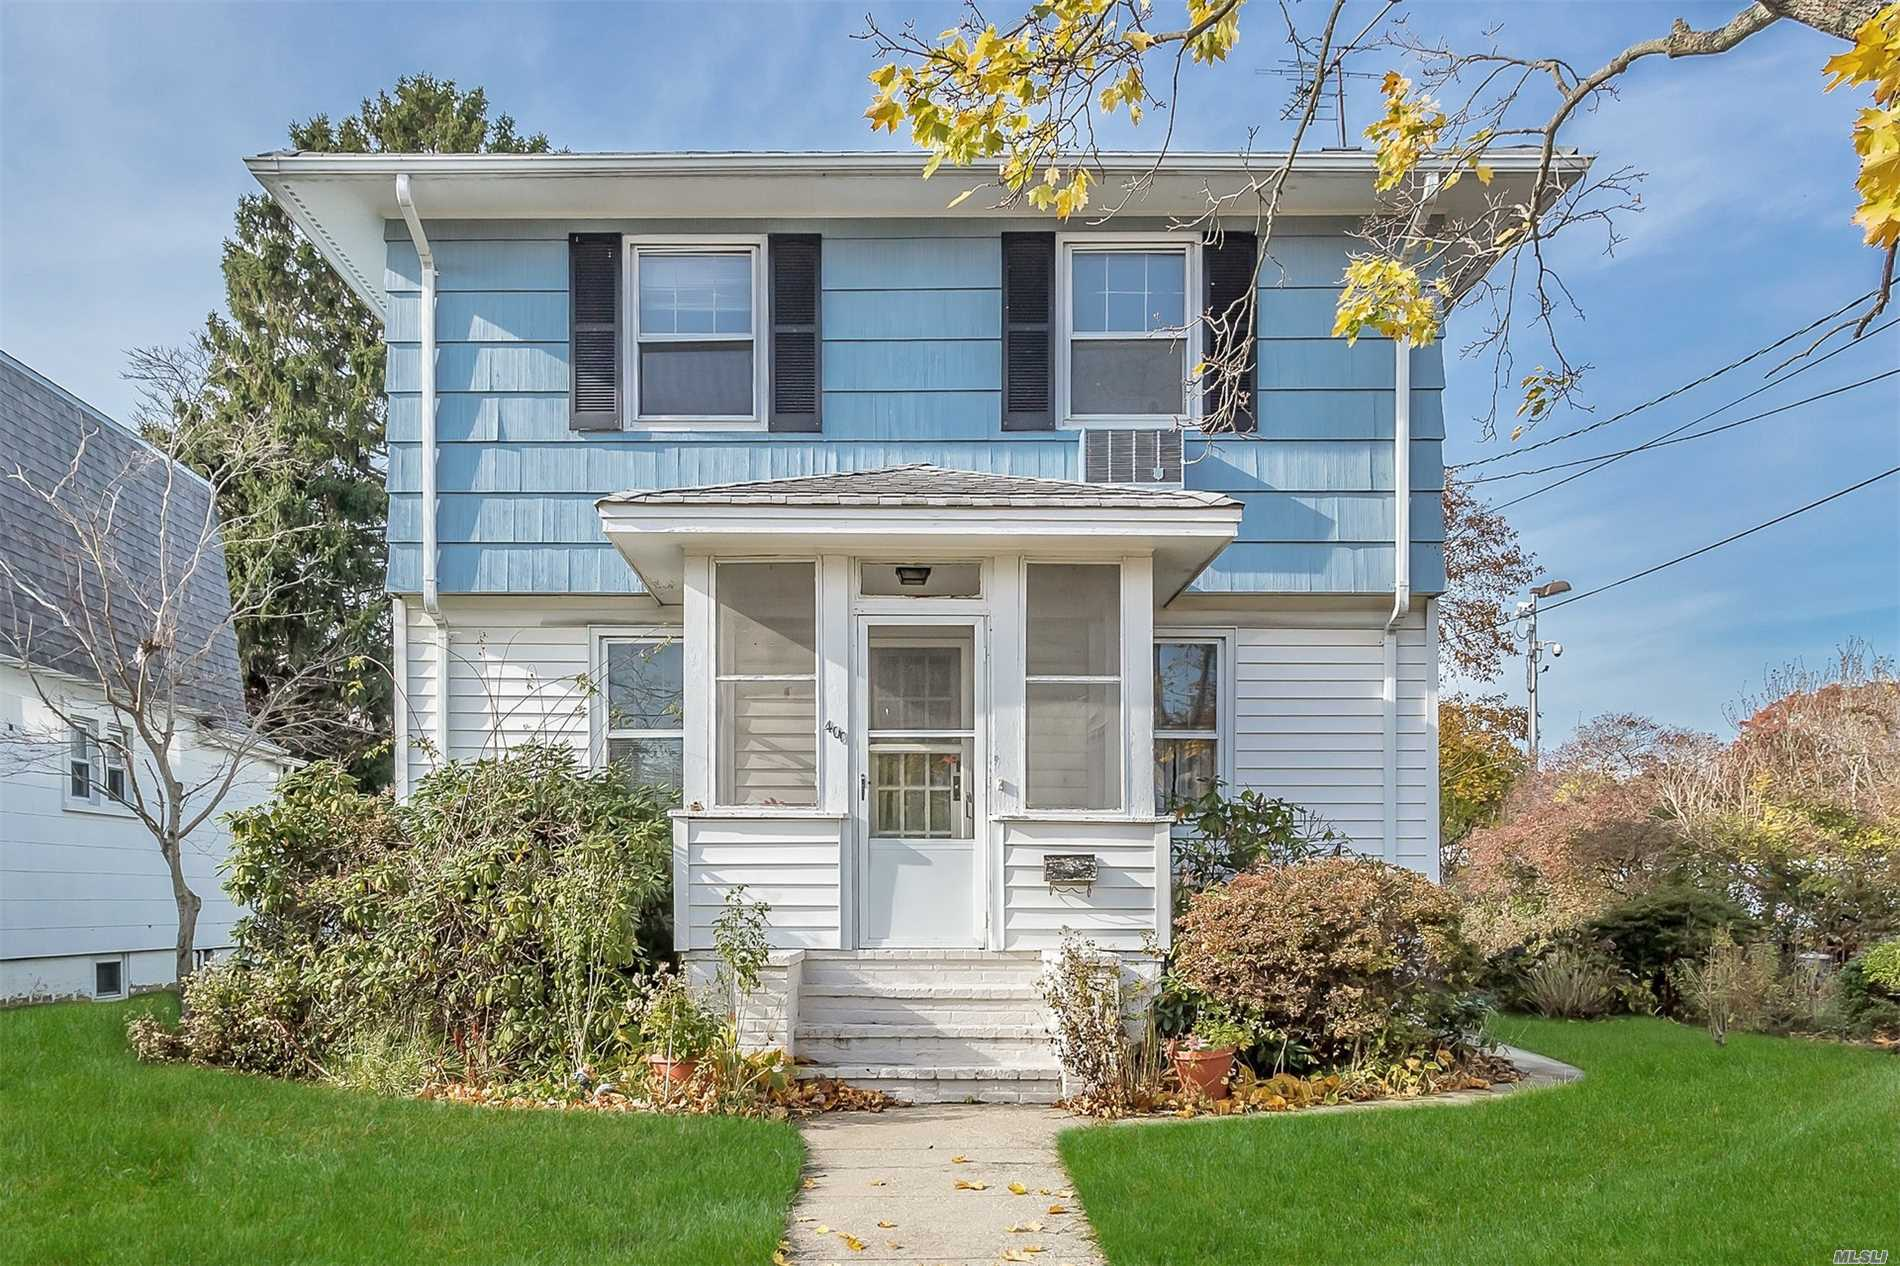 4 Bedroom, 2 Full Bath 1743 Square Foot Duplex Set On Oversized Property. Last House On Dead End Block. House Could Be Legal Mother/ Daughter With Proper Permits. House Has Updated Roof And Boiler. Needs Tlc. Close To Lirr